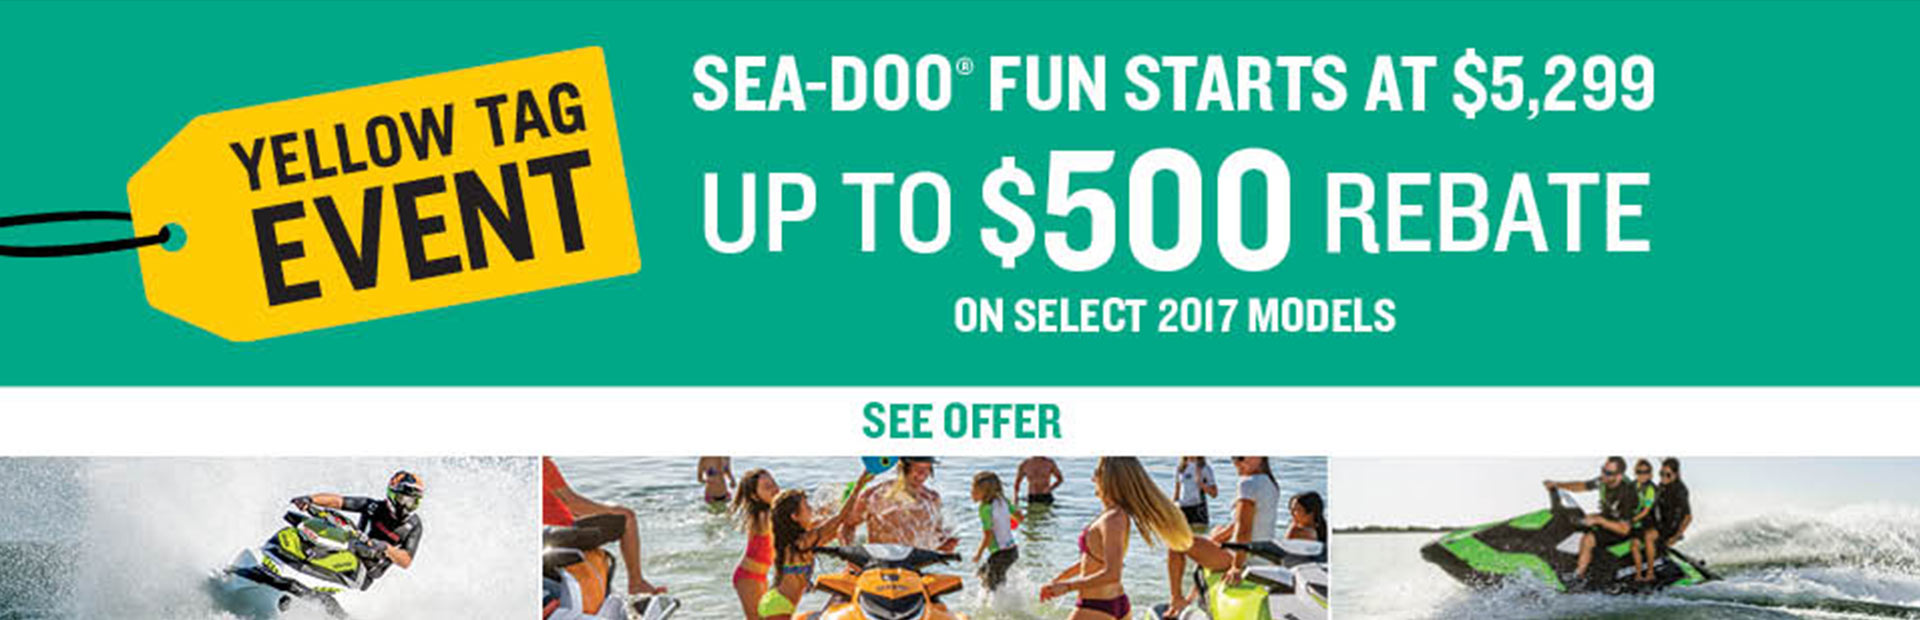 Sea-Doo Yellow Tag Event